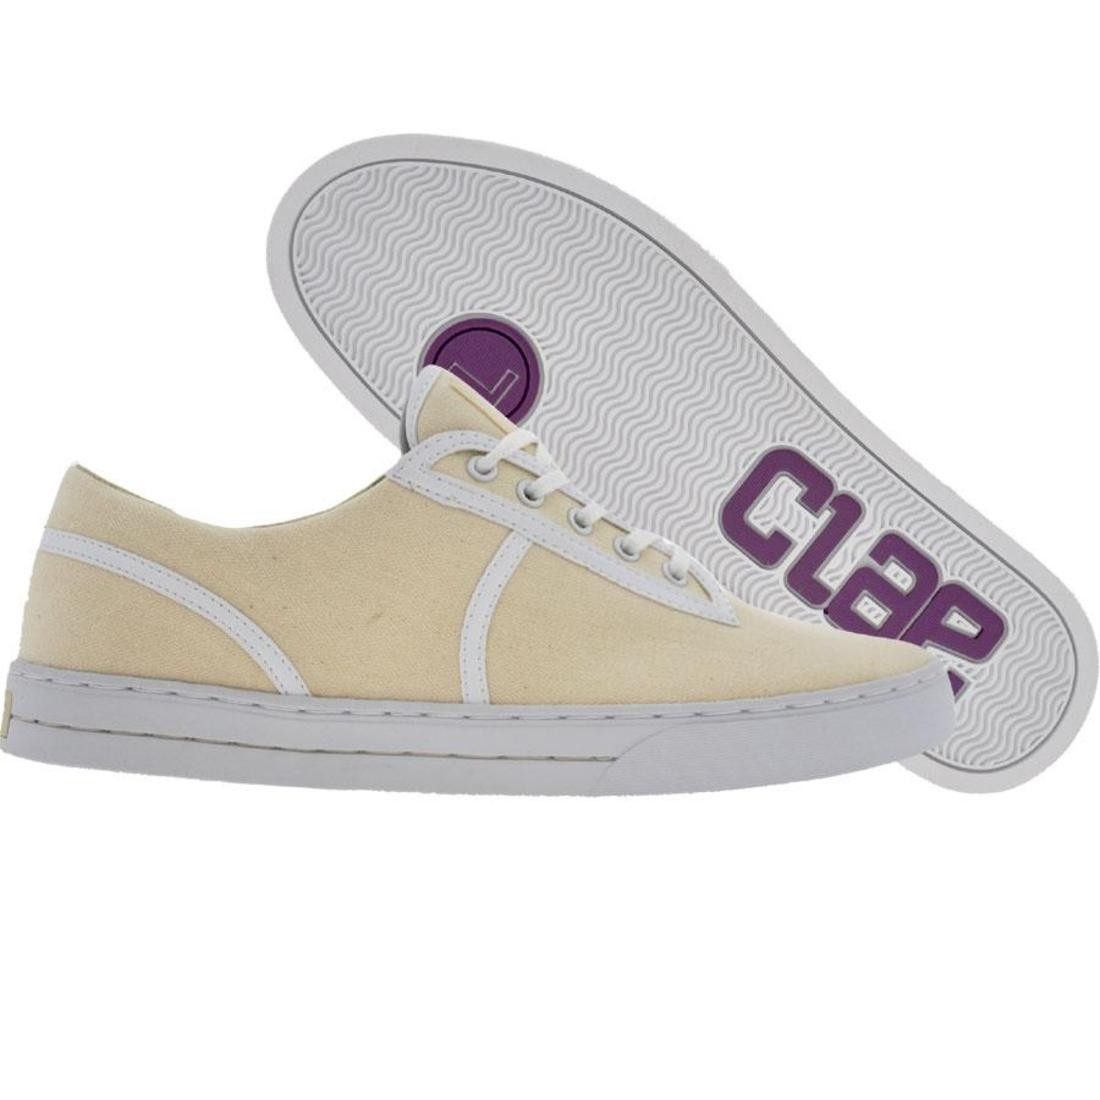 【海外限定】靴 スニーカー 【 CLAE KENNEDY NATURAL HERRINGBONE 】